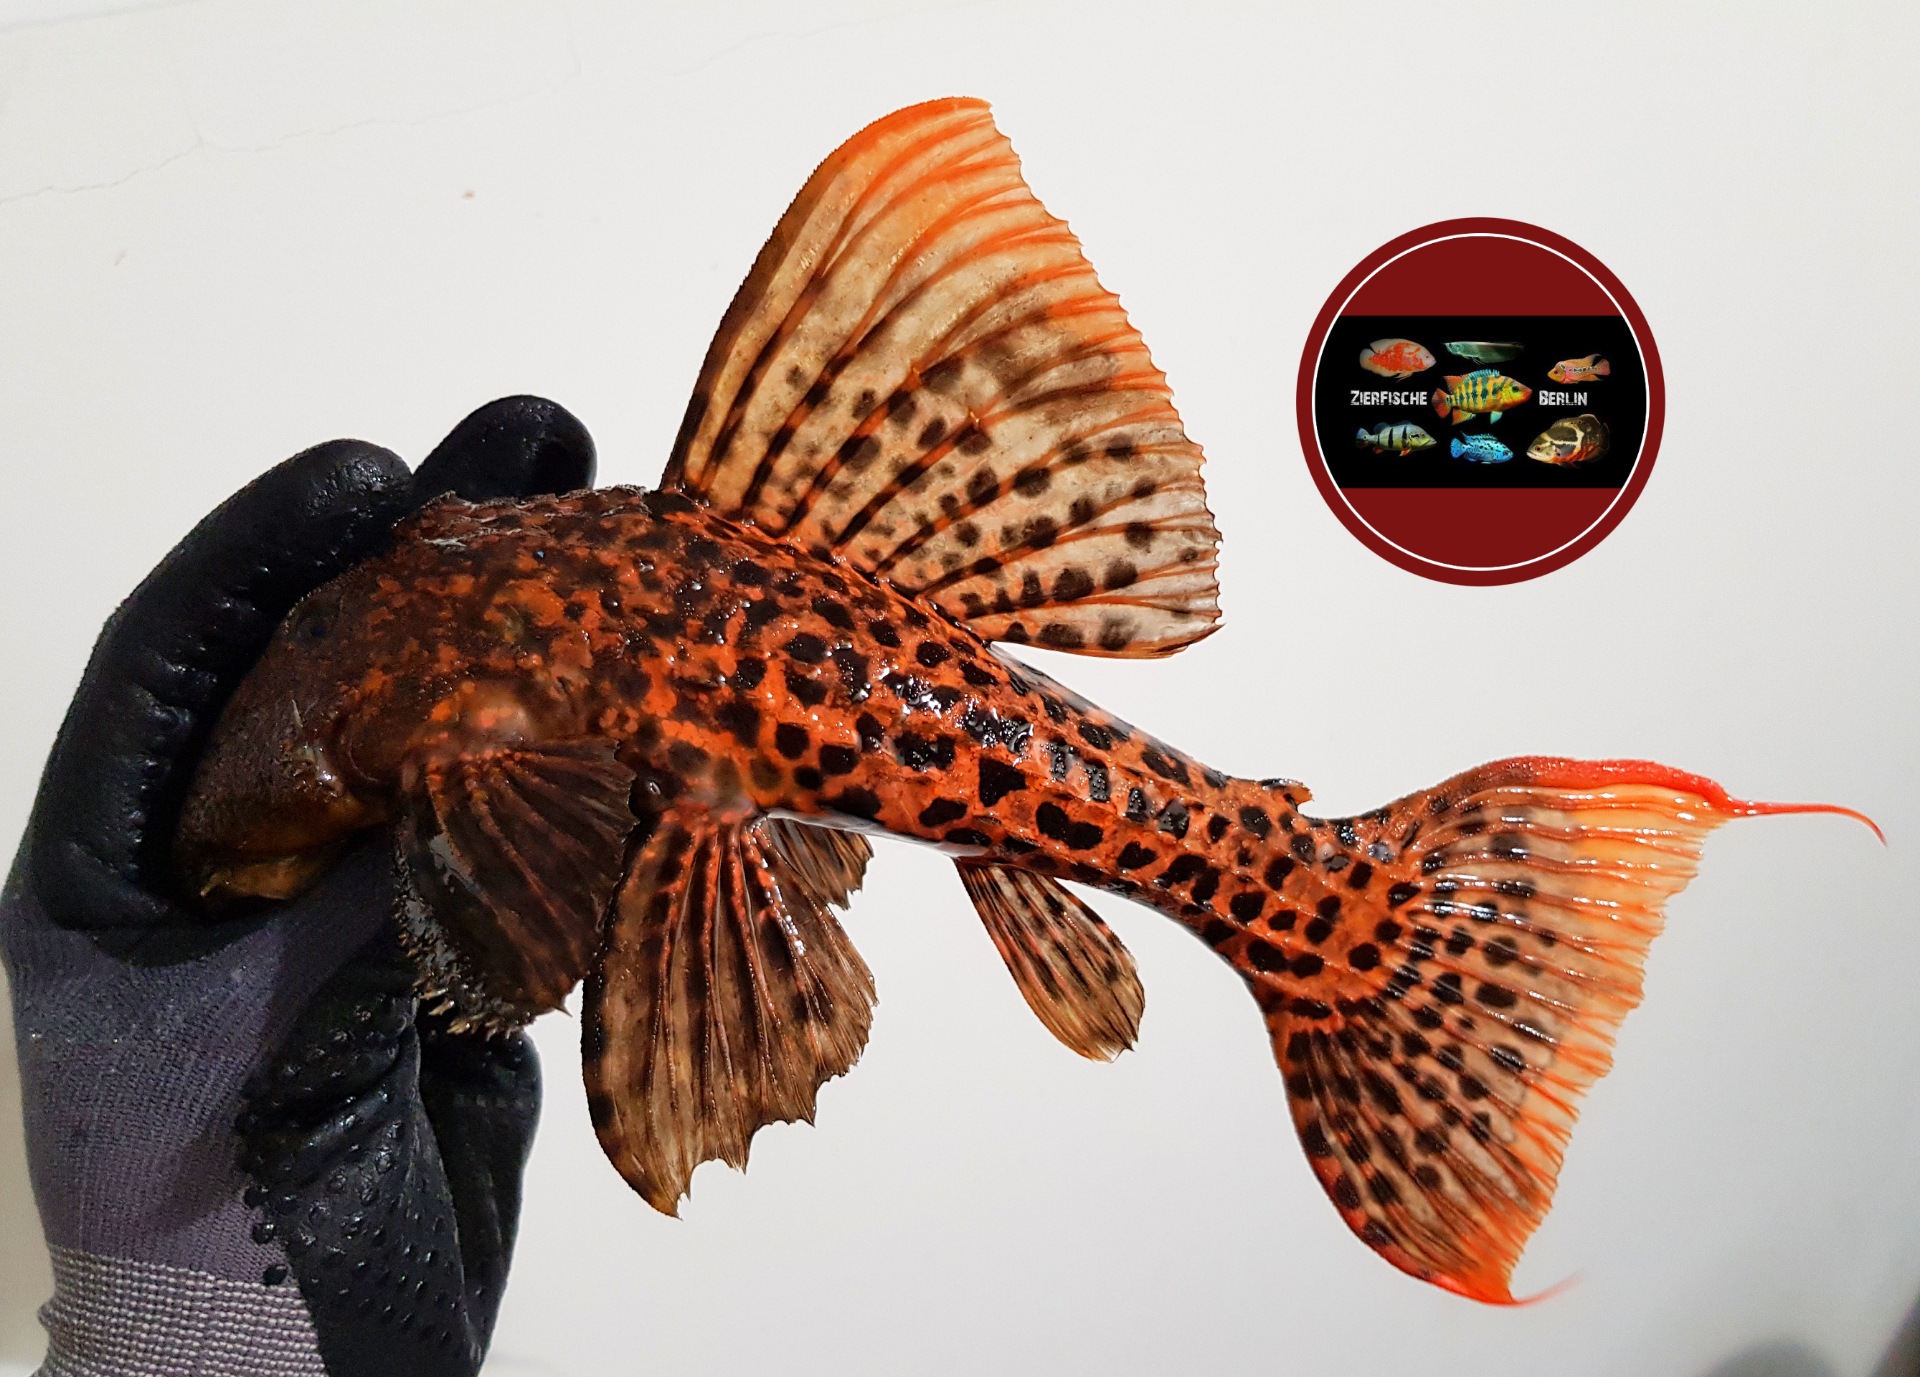 L 273 Pseudacanthicus sp. Red Salmon 30 cm